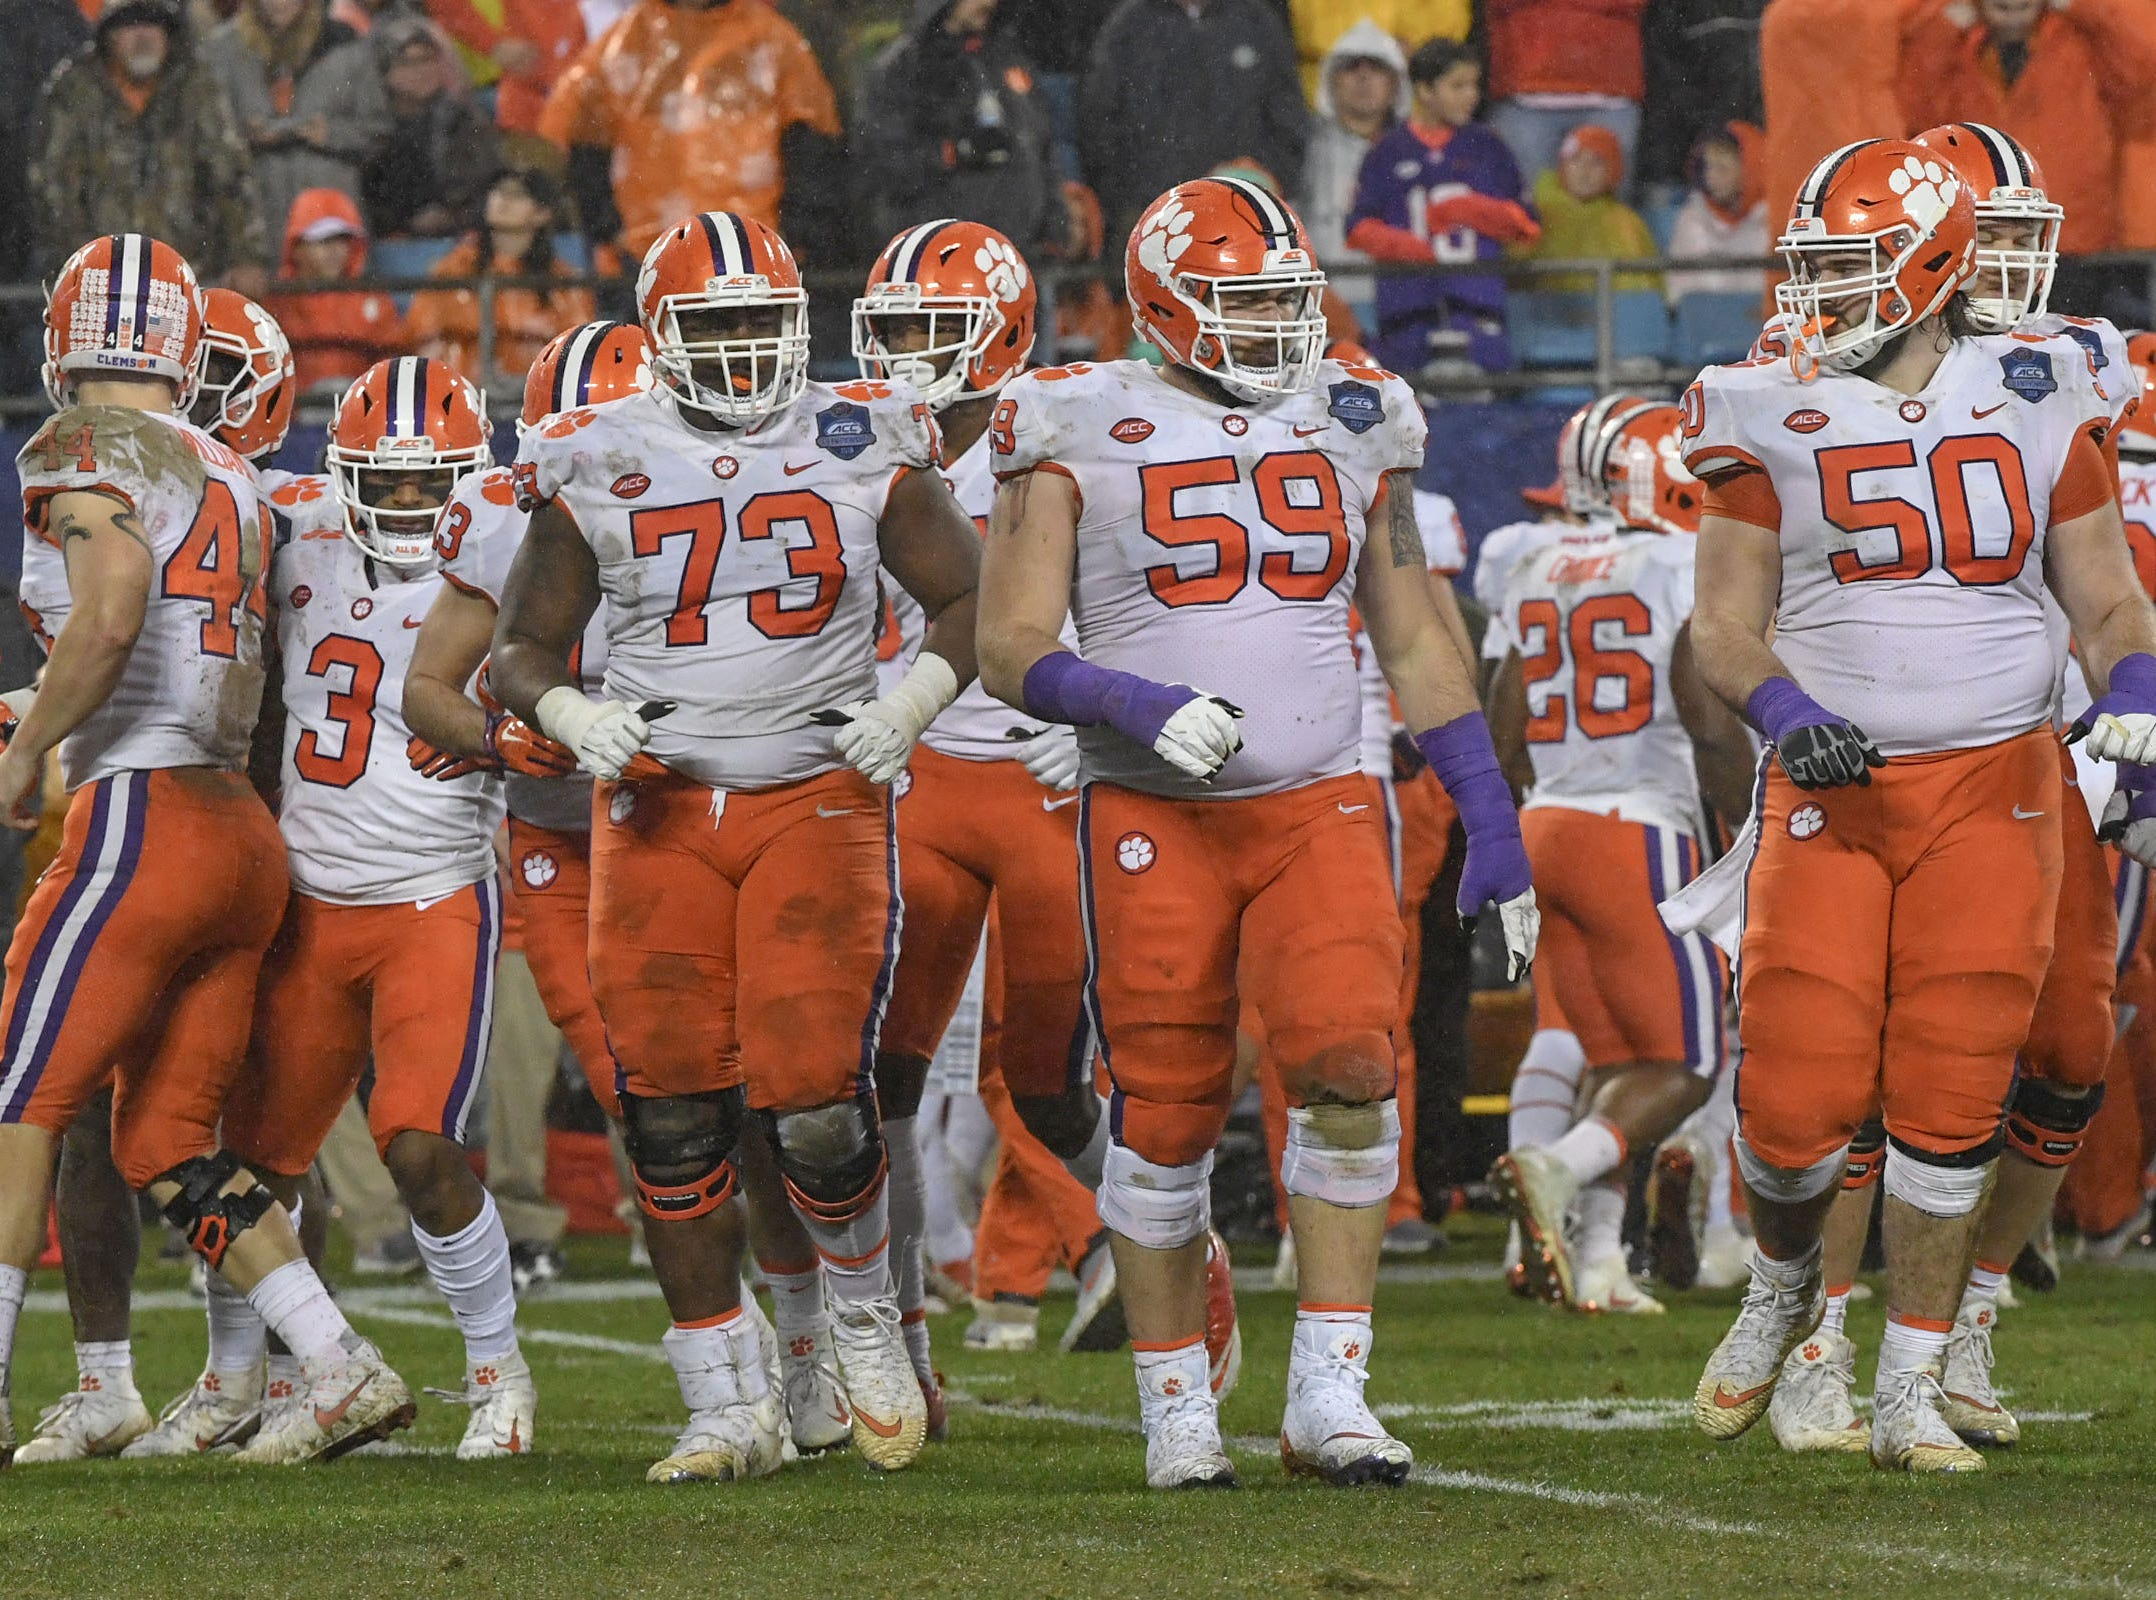 Clemson quarterback Trevor Lawrence (16), left, and offensive linemen walk up for a play during the third quarter of the Dr. Pepper ACC football championship at Bank of America Stadium in Charlotte, N.C. on Saturday, December 1, 2018.